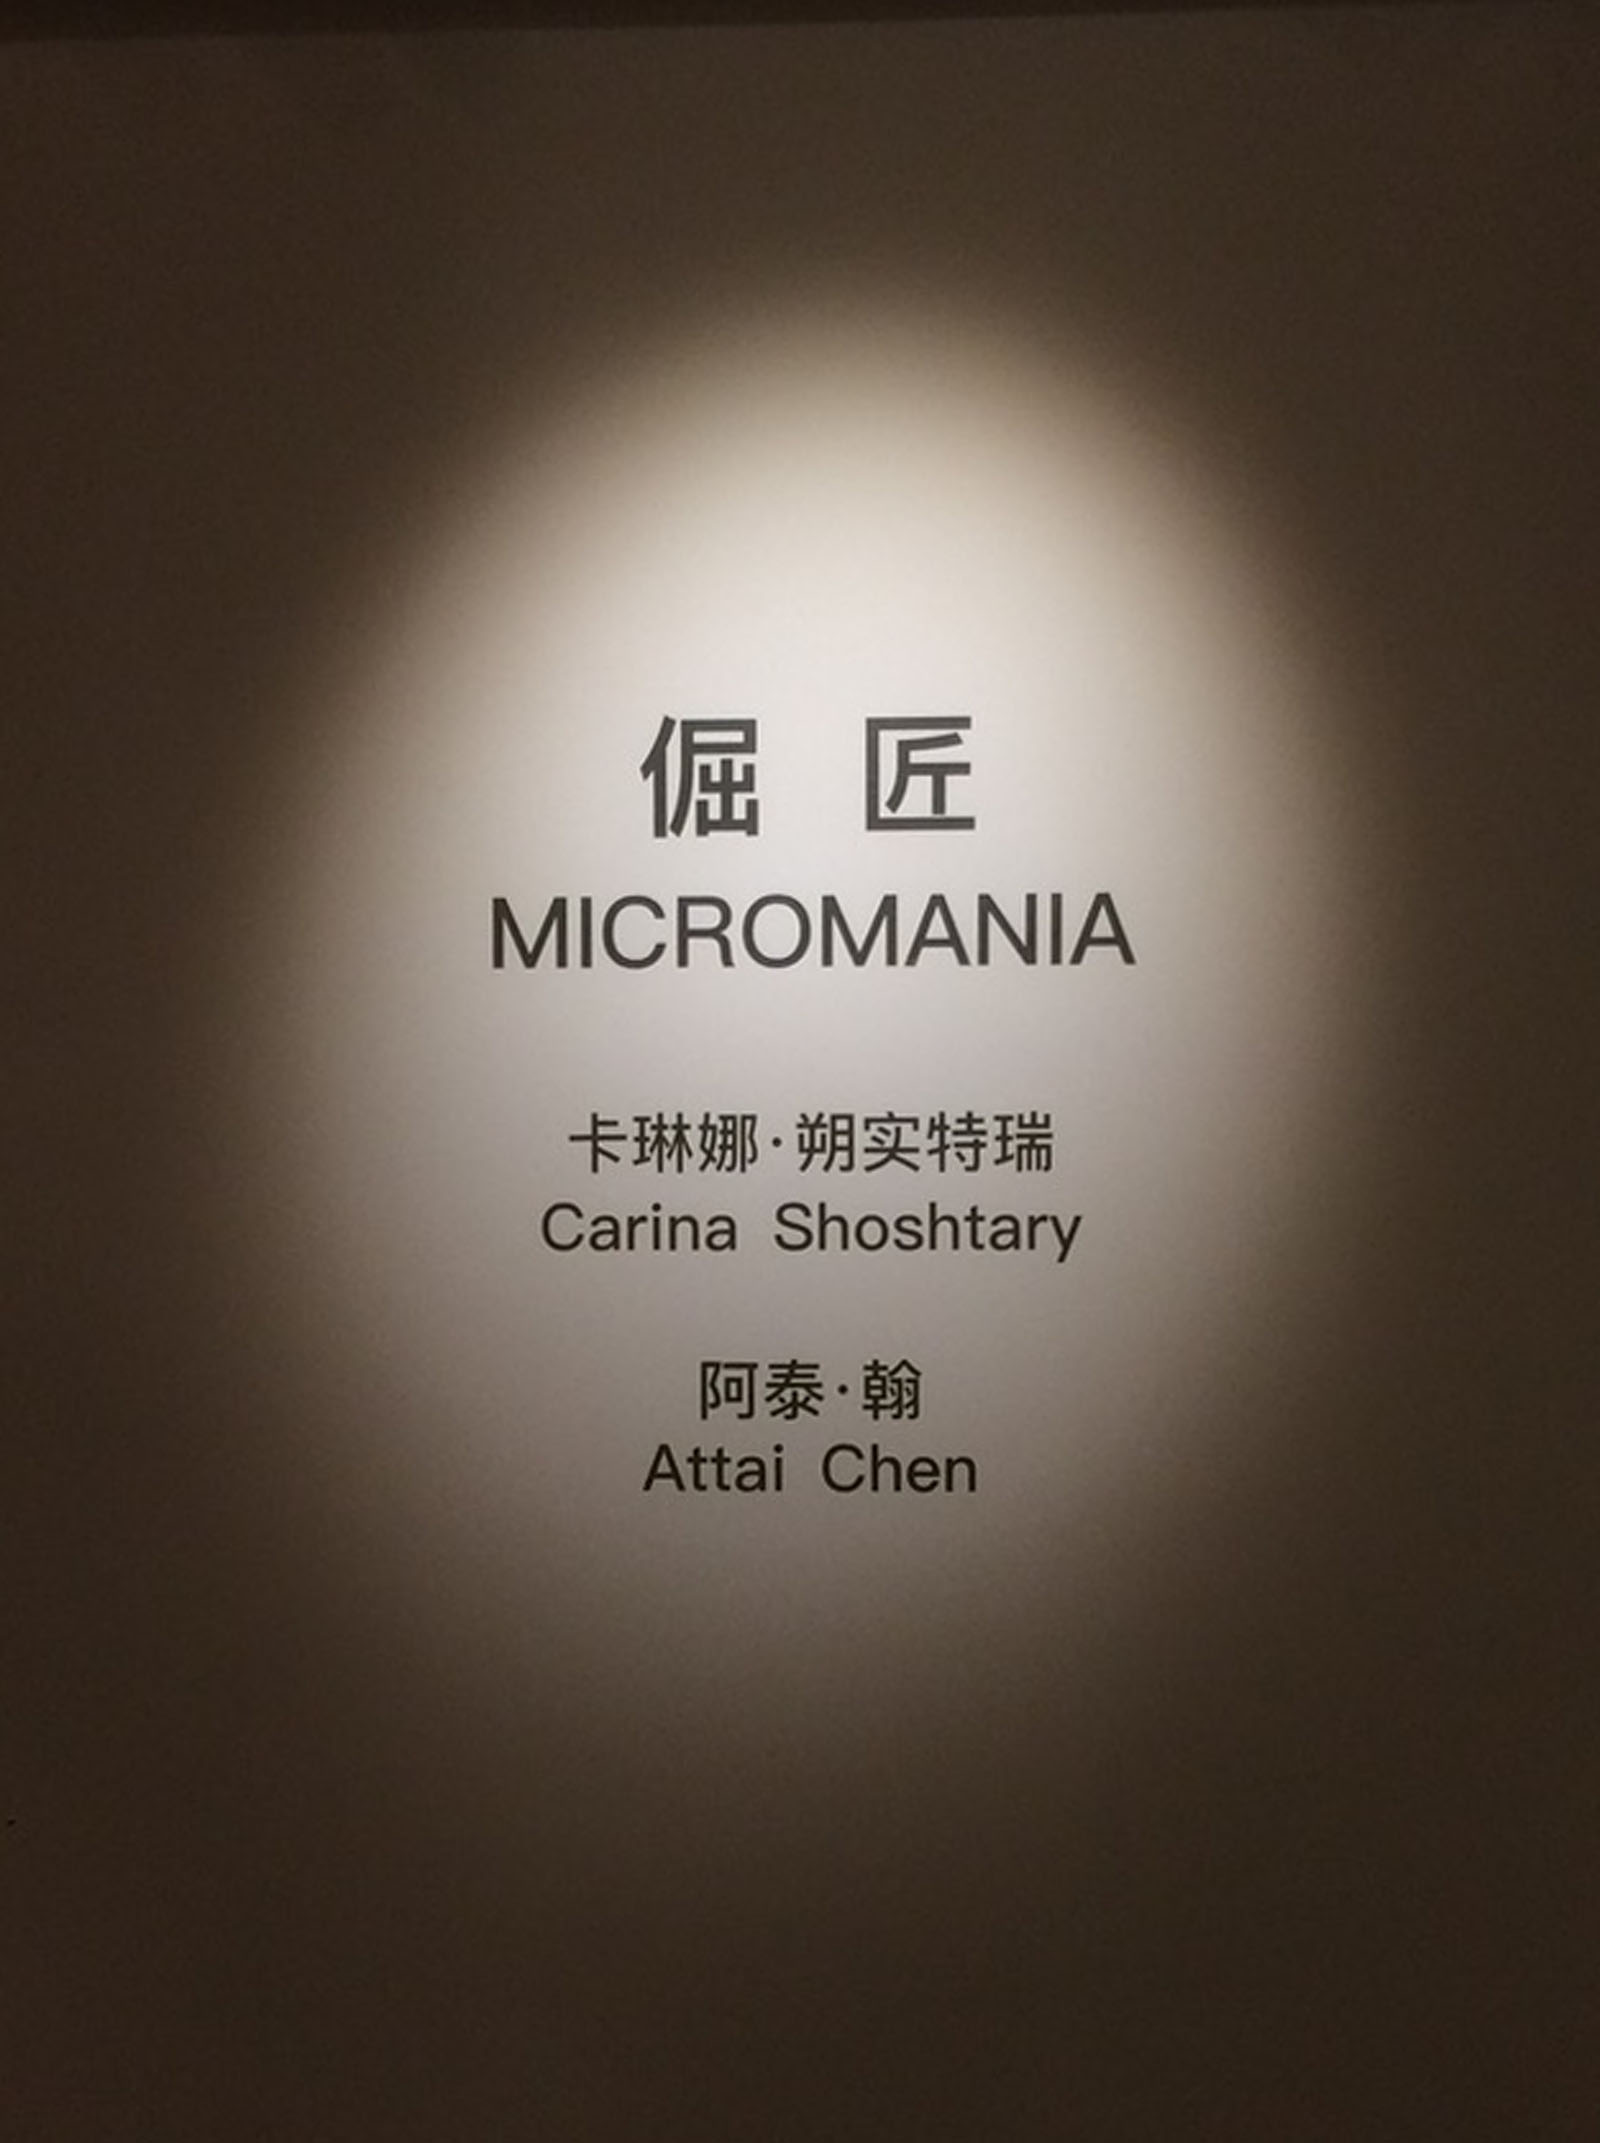 """Micromania"" I A duo show of Attai Chen and Carina Shoshtary I 2017/2018 I Froots & Nogart, Shanghai, China I Photo: Froots"